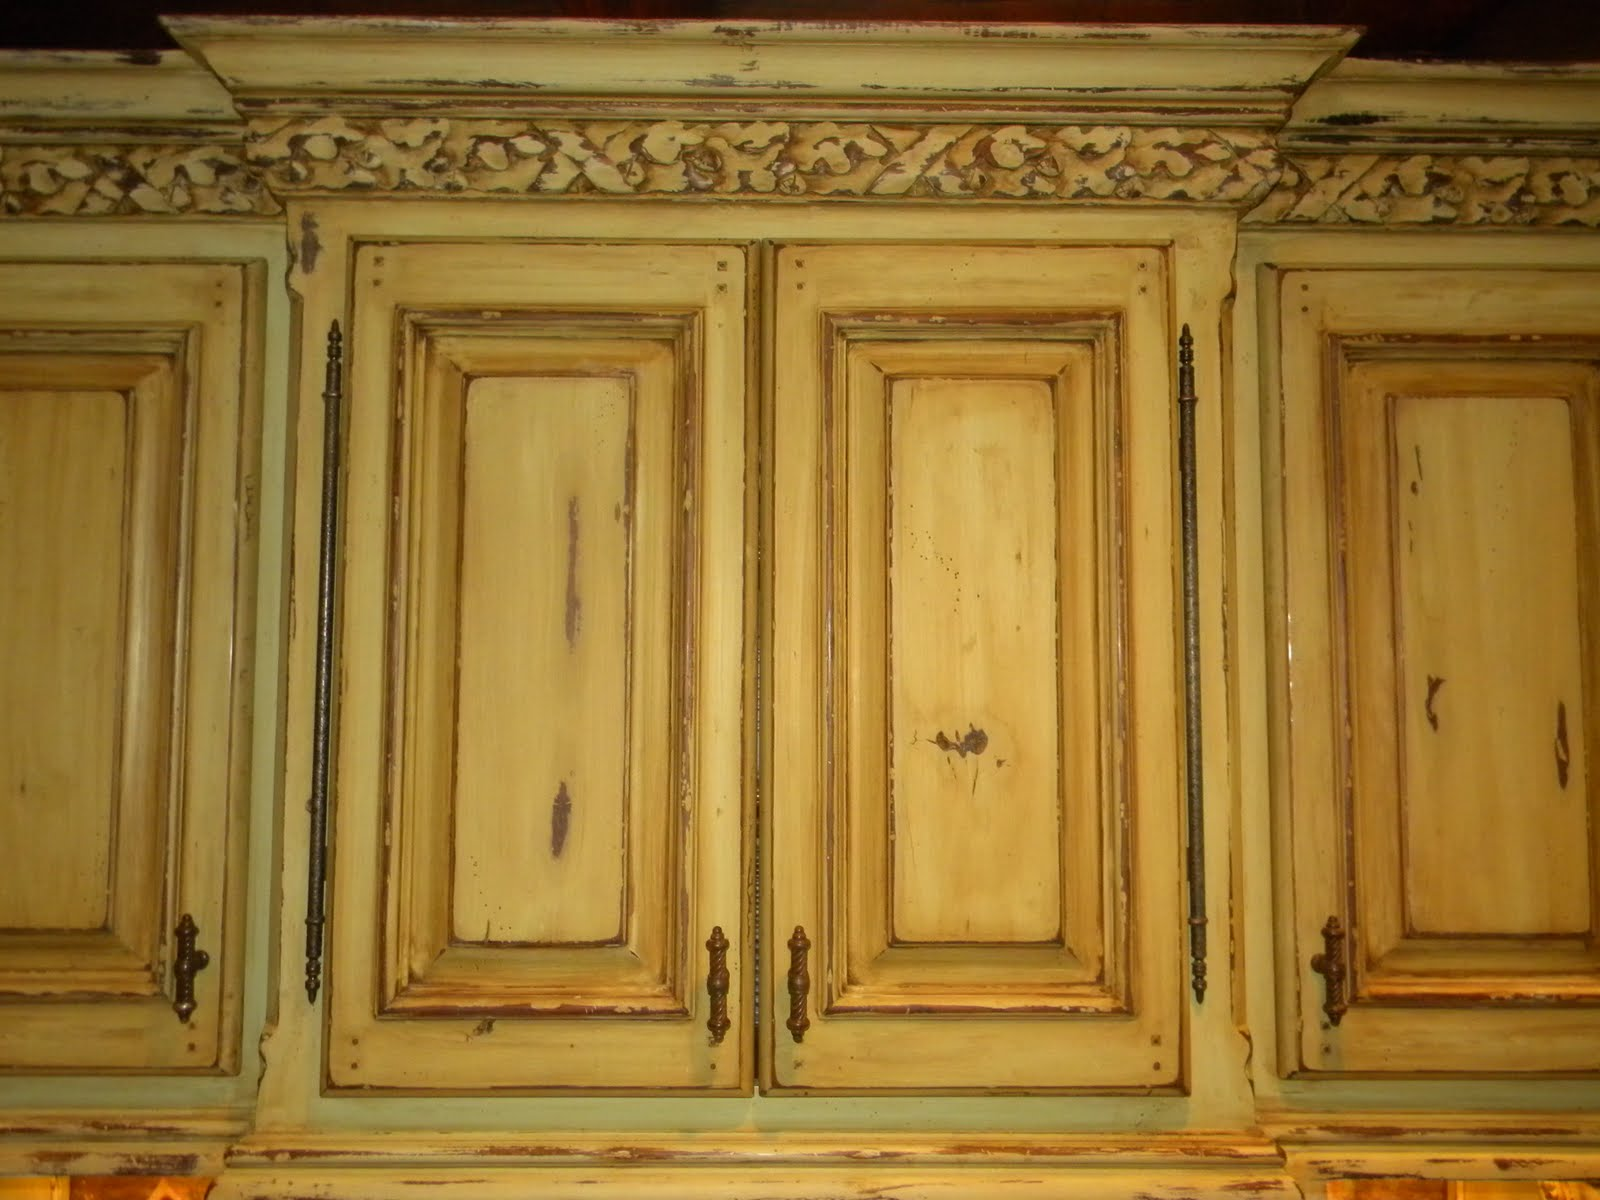 While We Re On The Subject Of Kitchens Here S Most Recent Original Dark Wood Cabinets Were Painted Distressed And Over Glazed